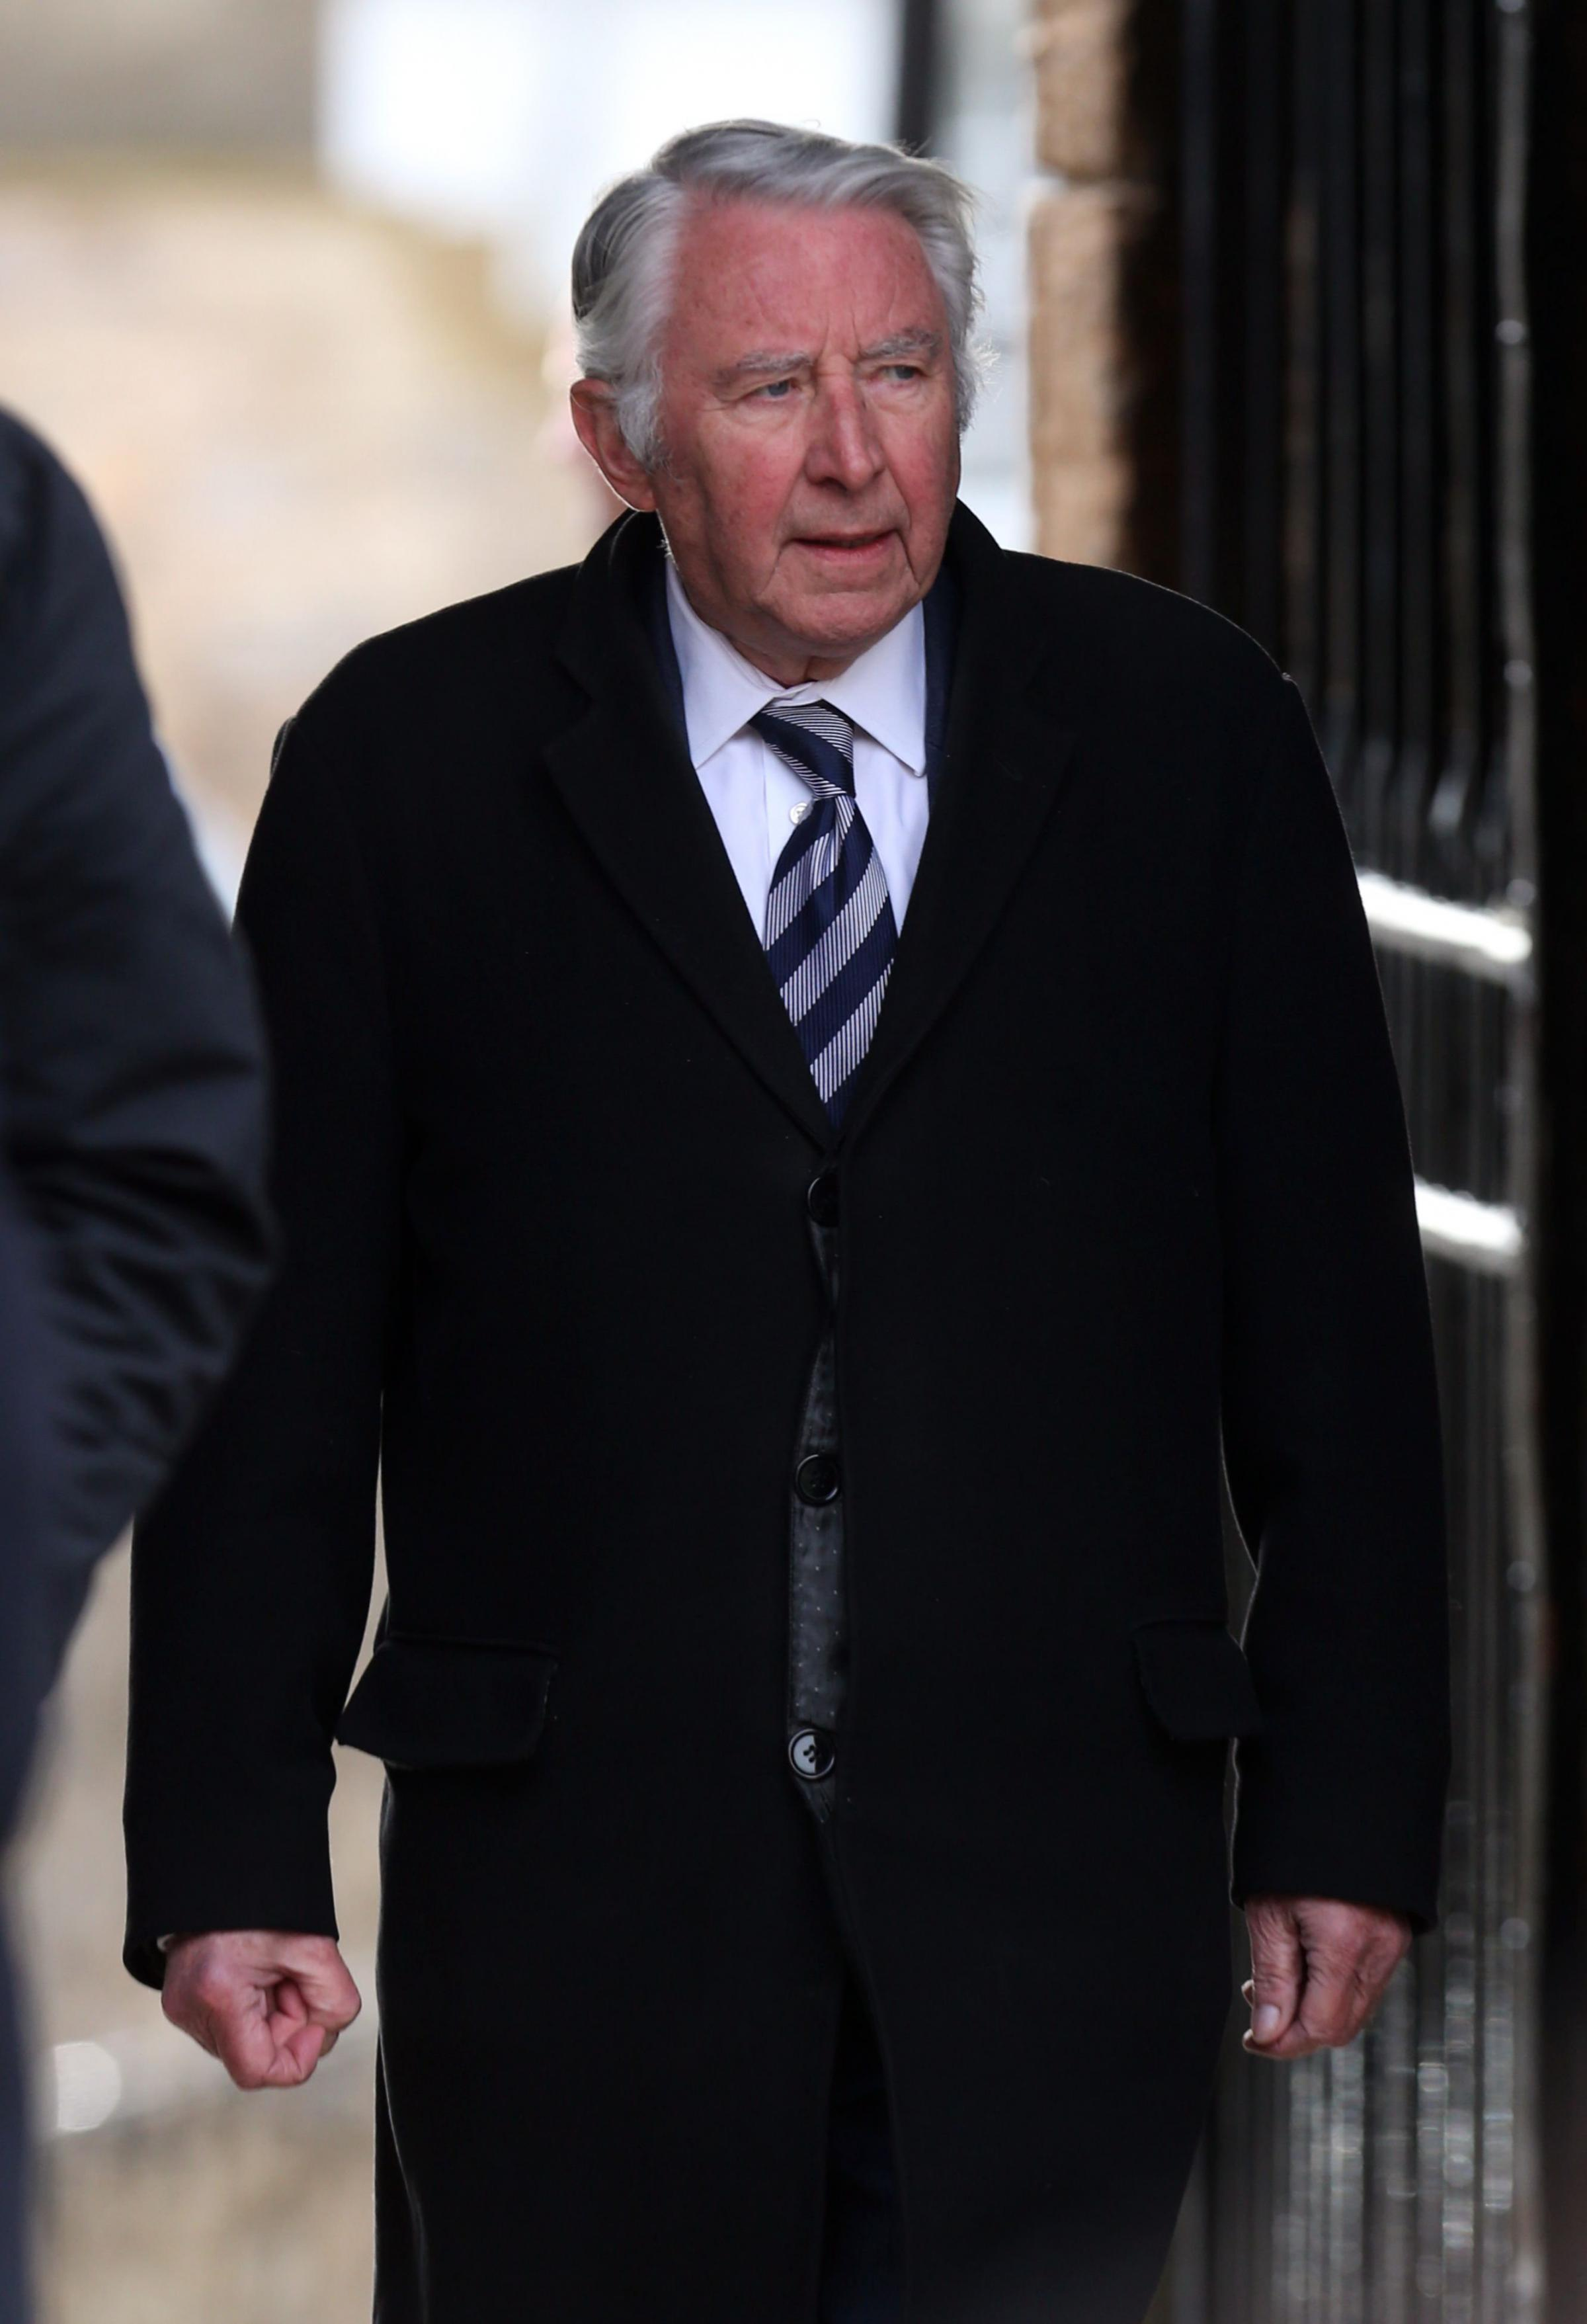 Lord David Steel pulls out of Fringe by the Sea after party suspension